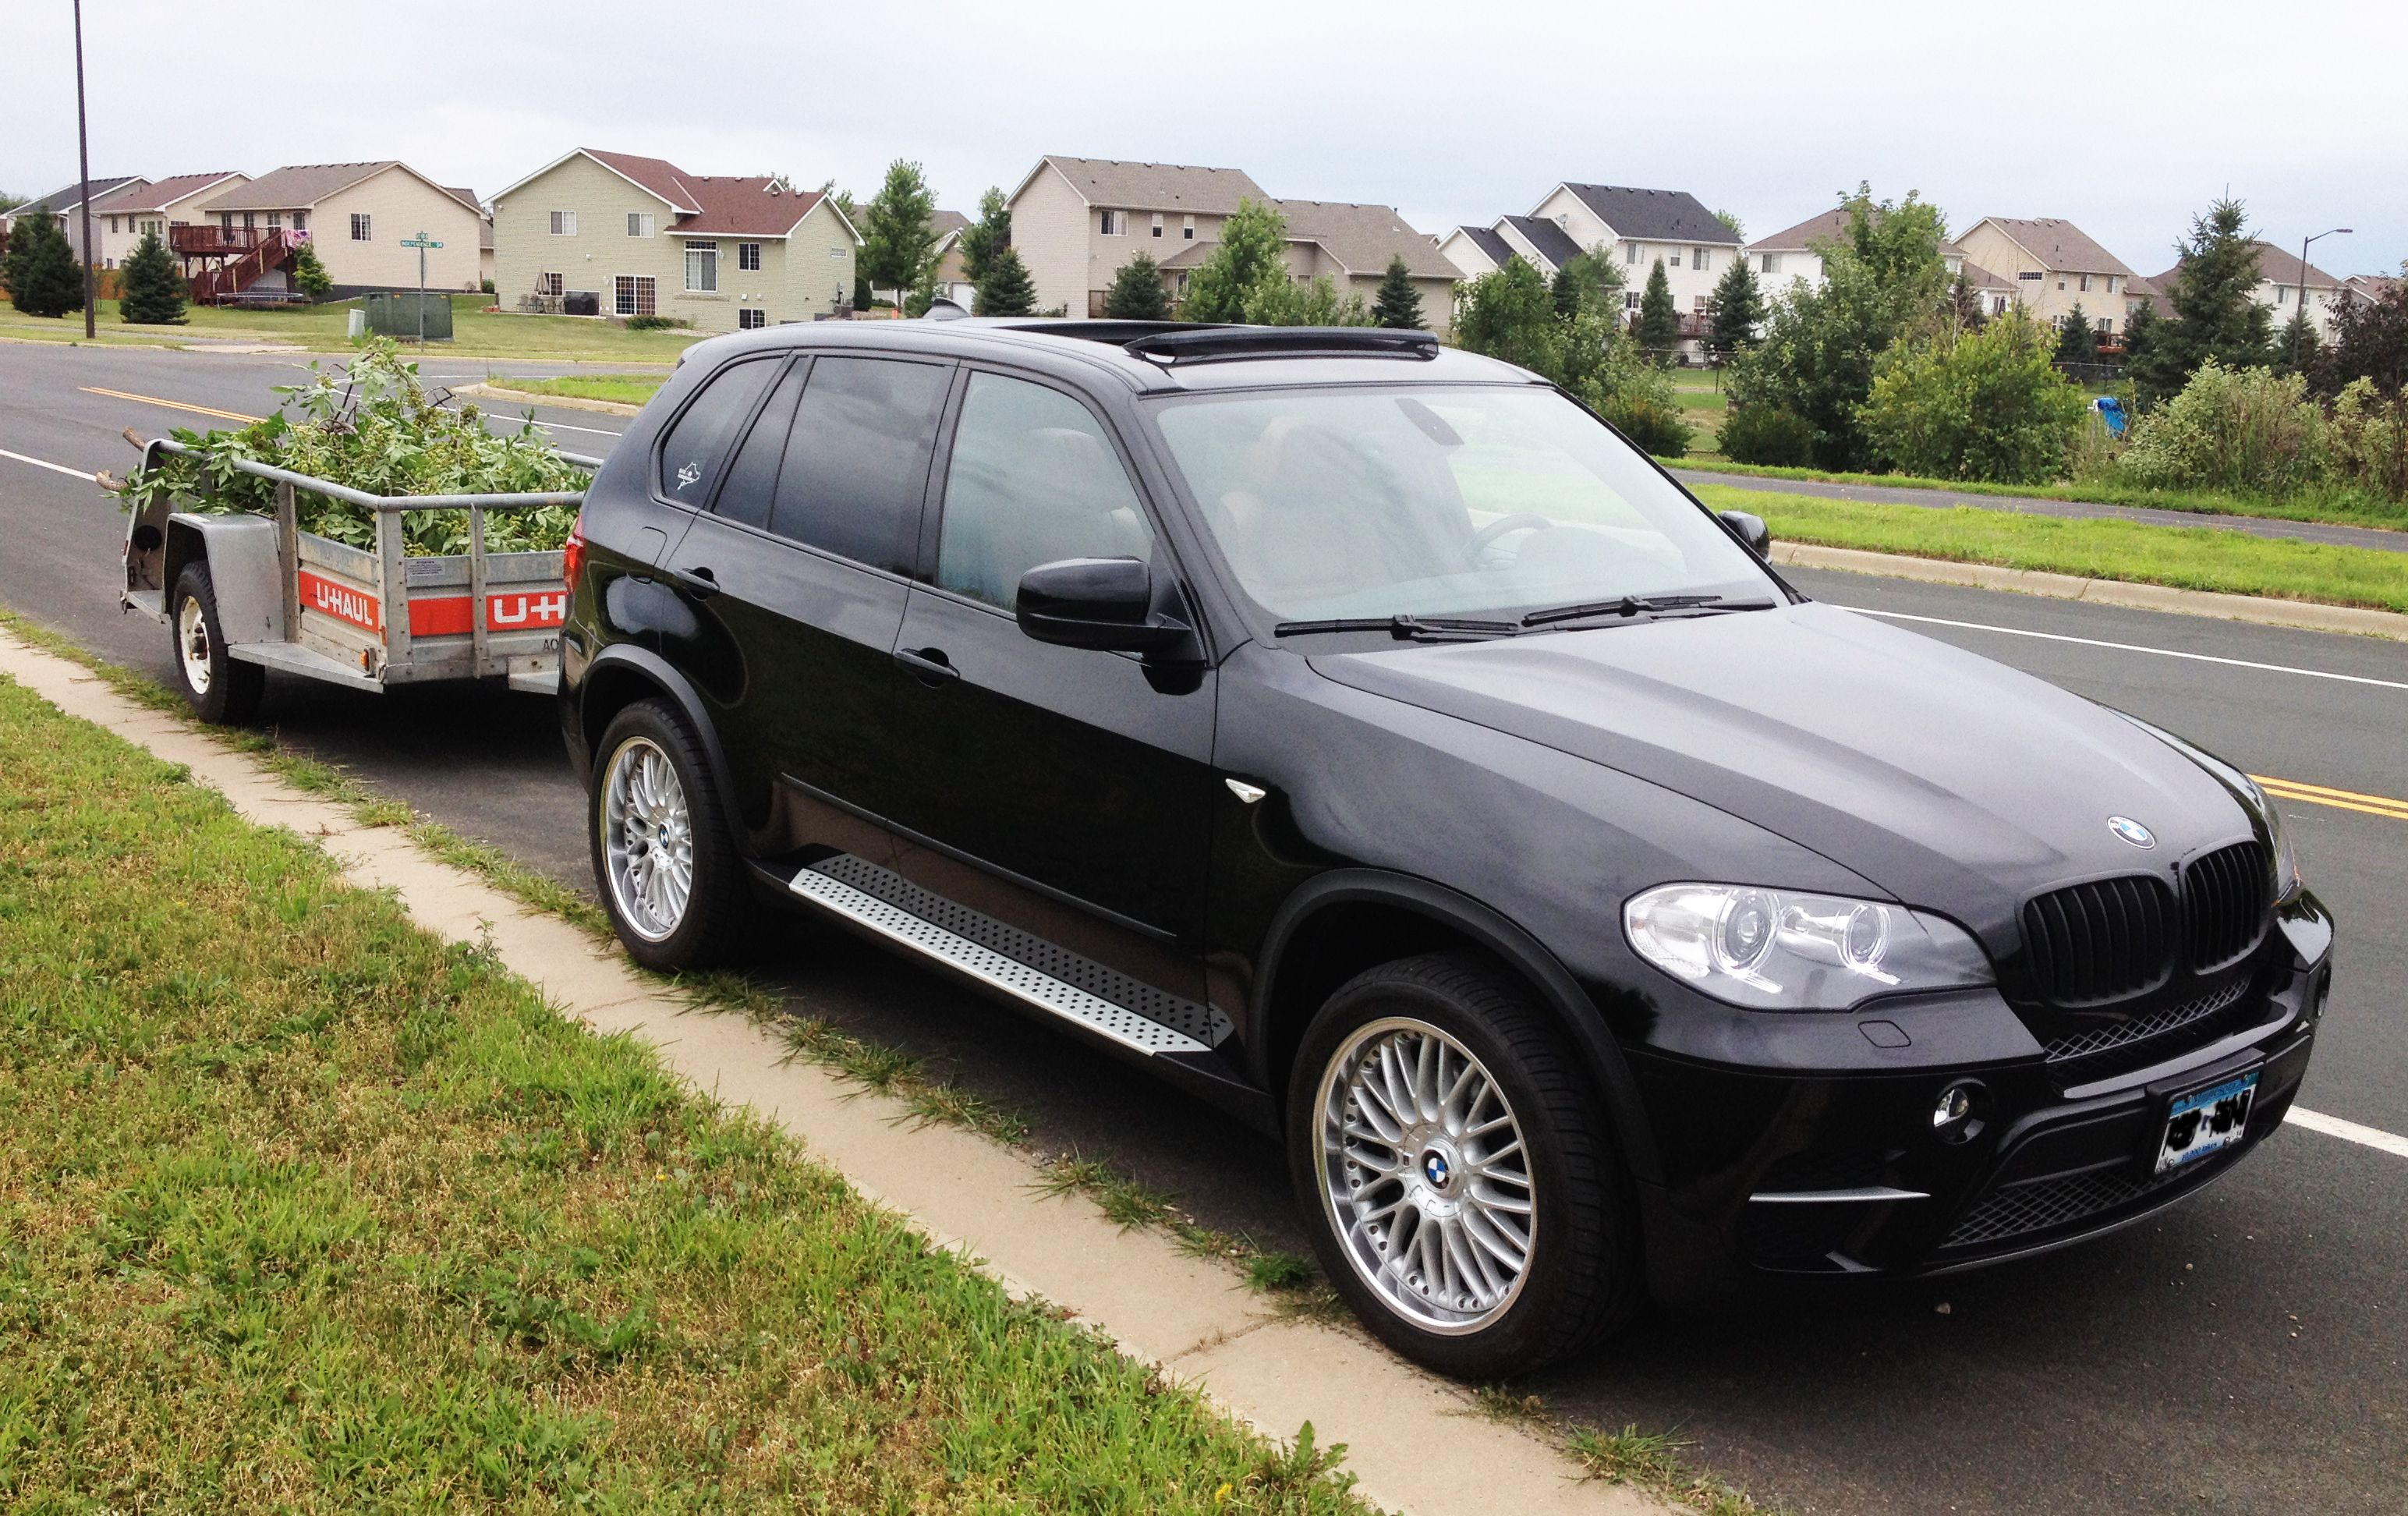 towing photos with x5 page 6 bimmerfest bmw forums. Black Bedroom Furniture Sets. Home Design Ideas